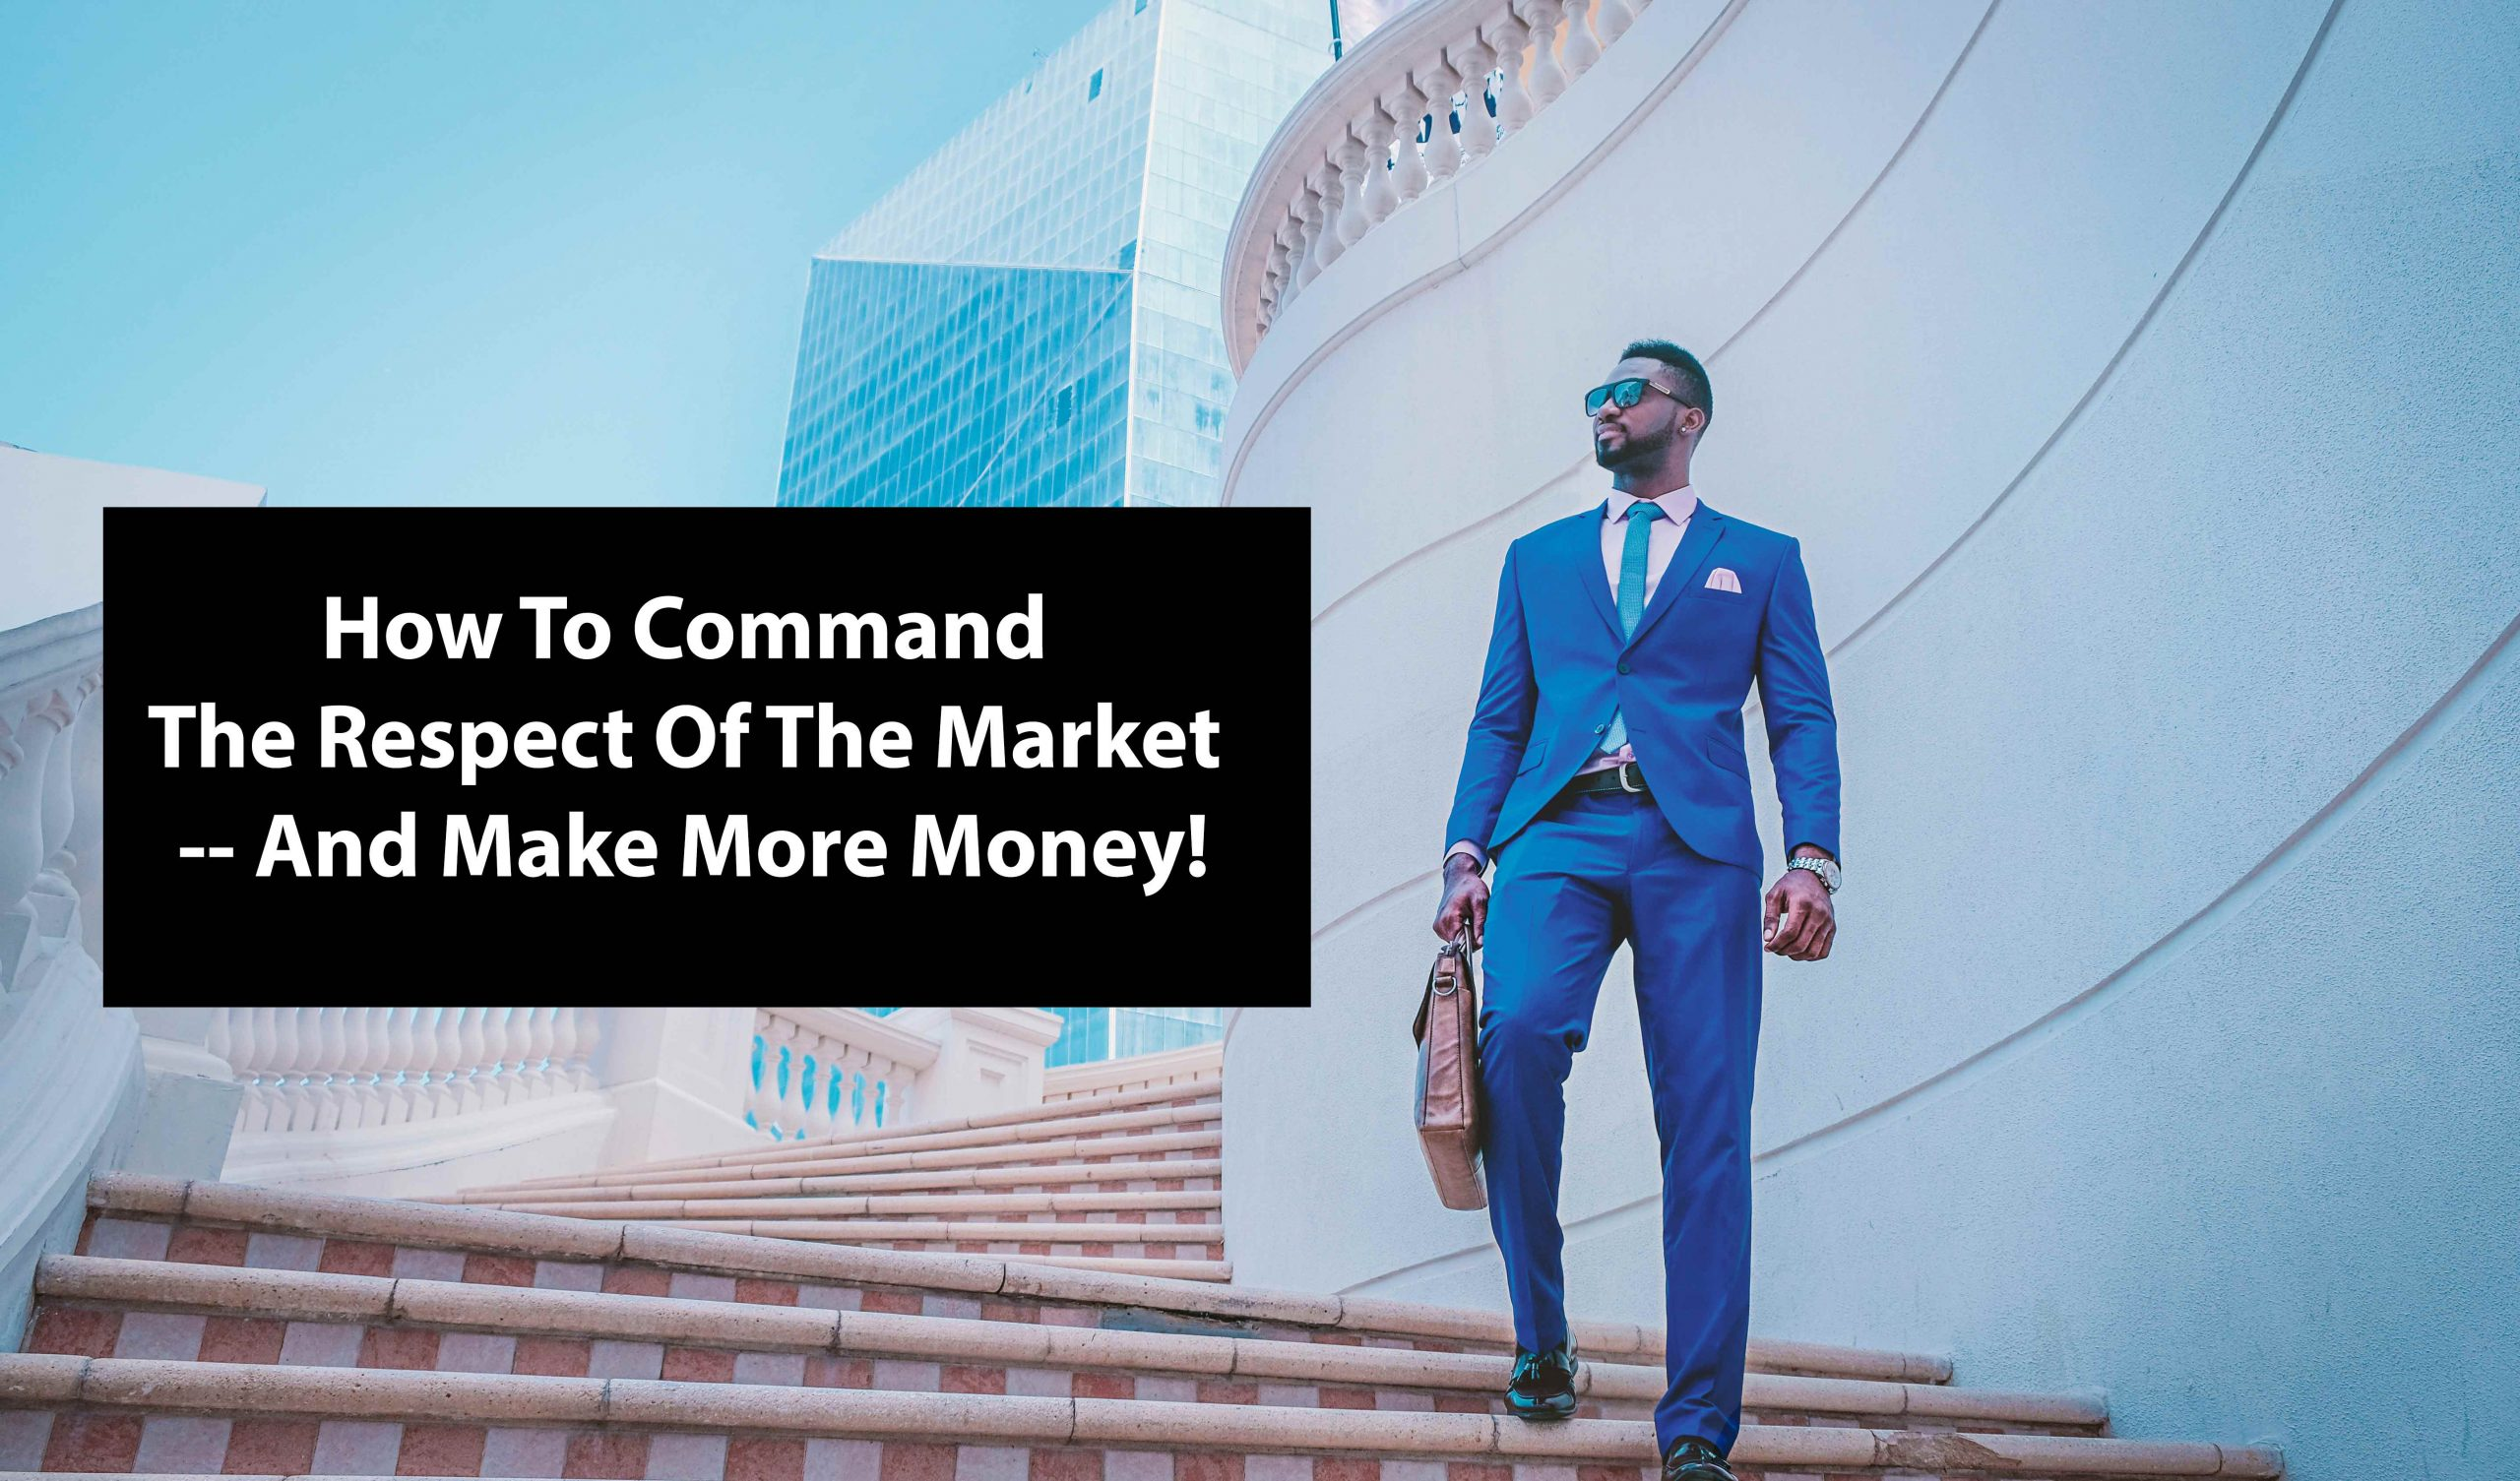 How To Command The Respect Of The Market – And Make More Money! By: Dr. Brian Reuben